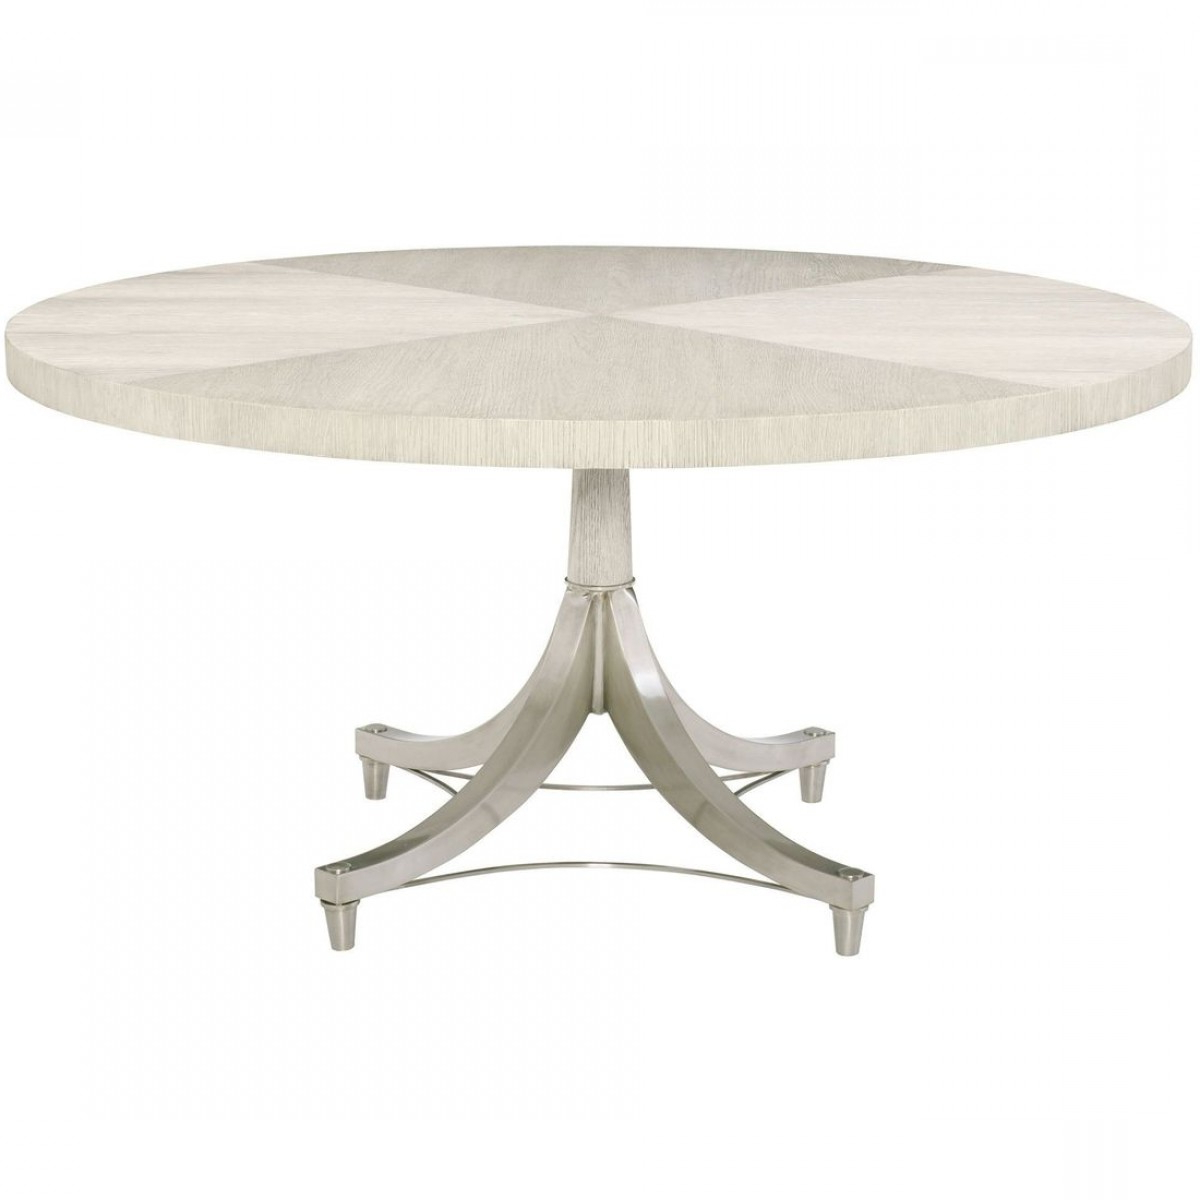 Neo Round Dining Tables For Current Bernhardt Domaine Blanc Round Dining Table (Gallery 30 of 30)